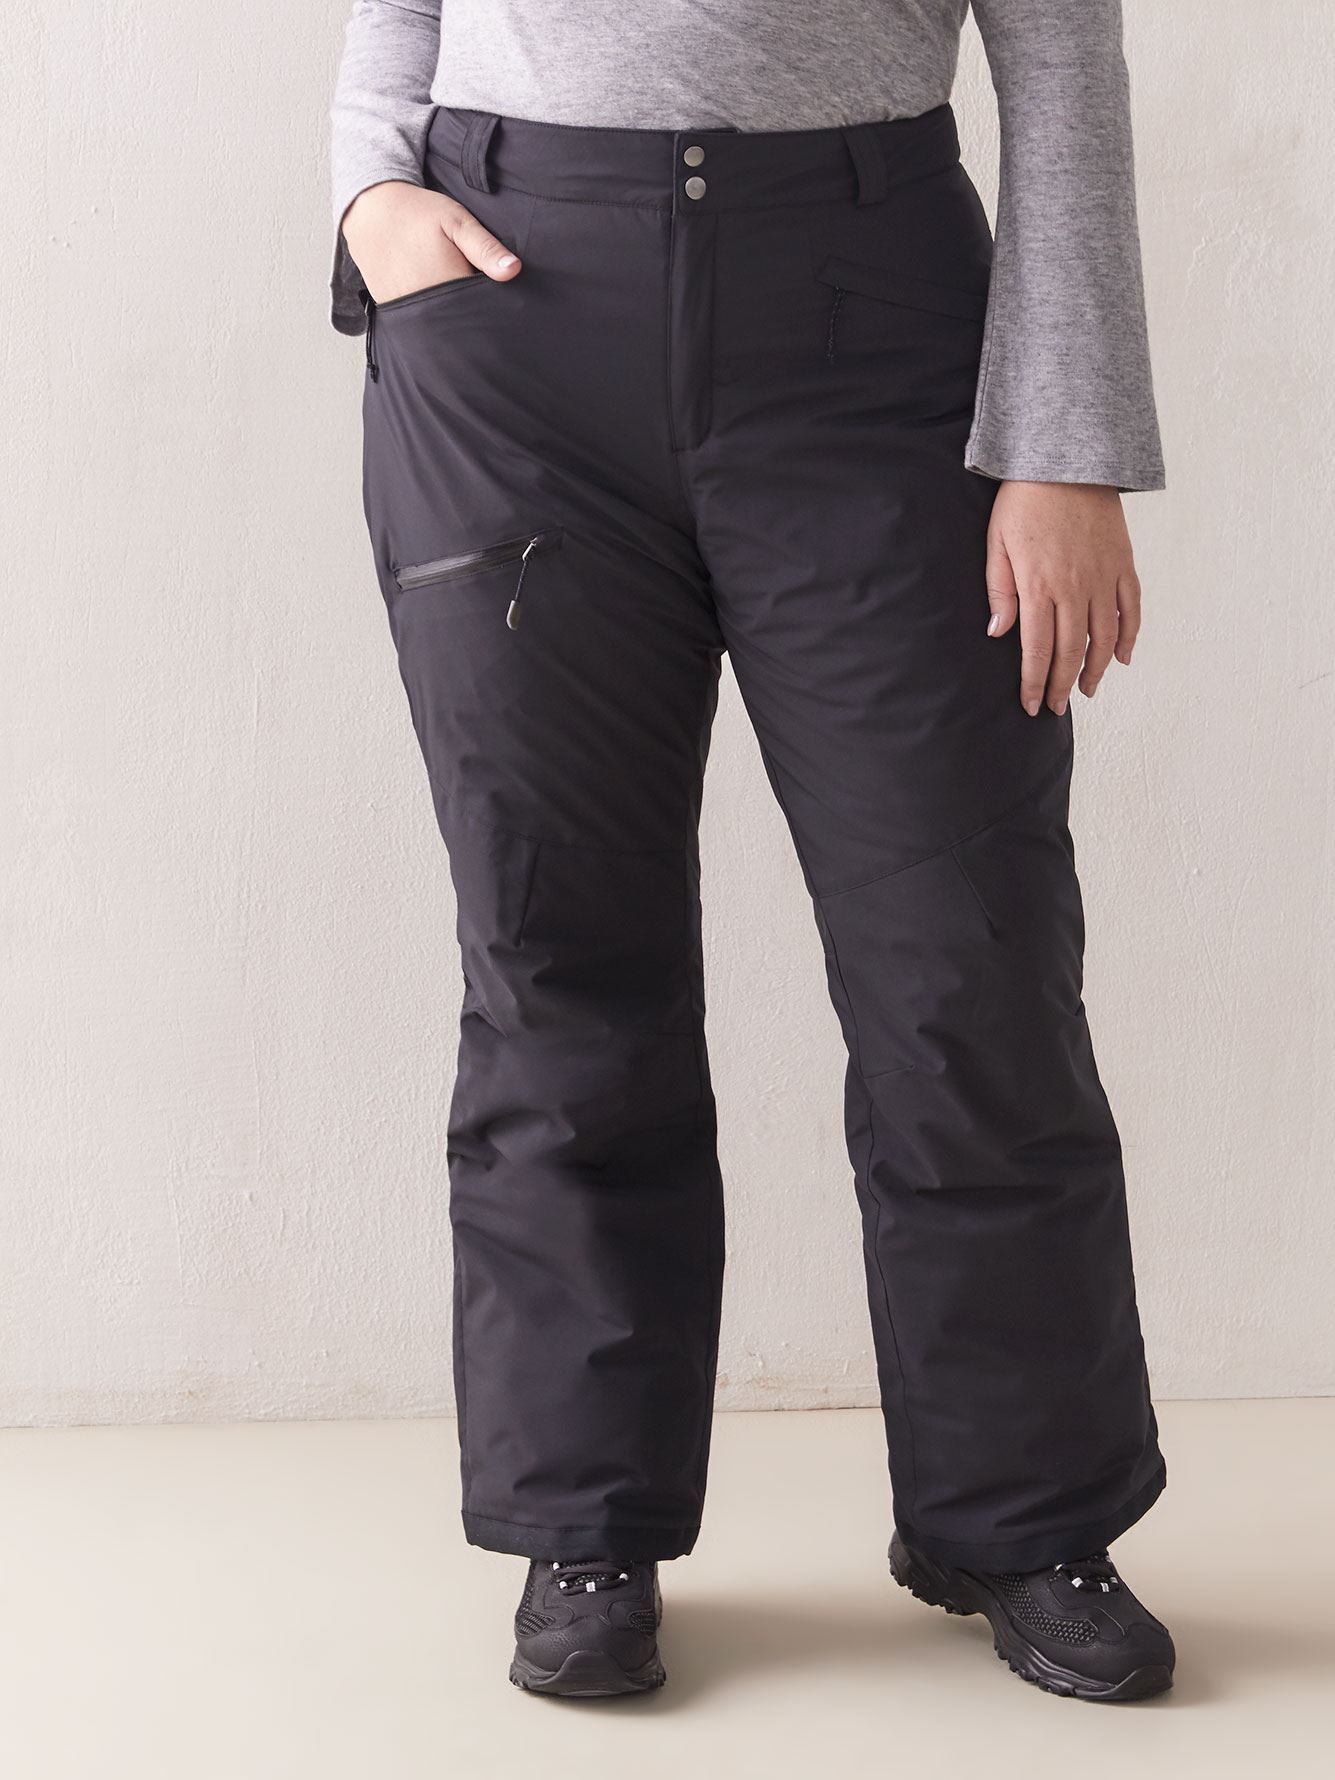 Wildside Ski Pants - Columbia